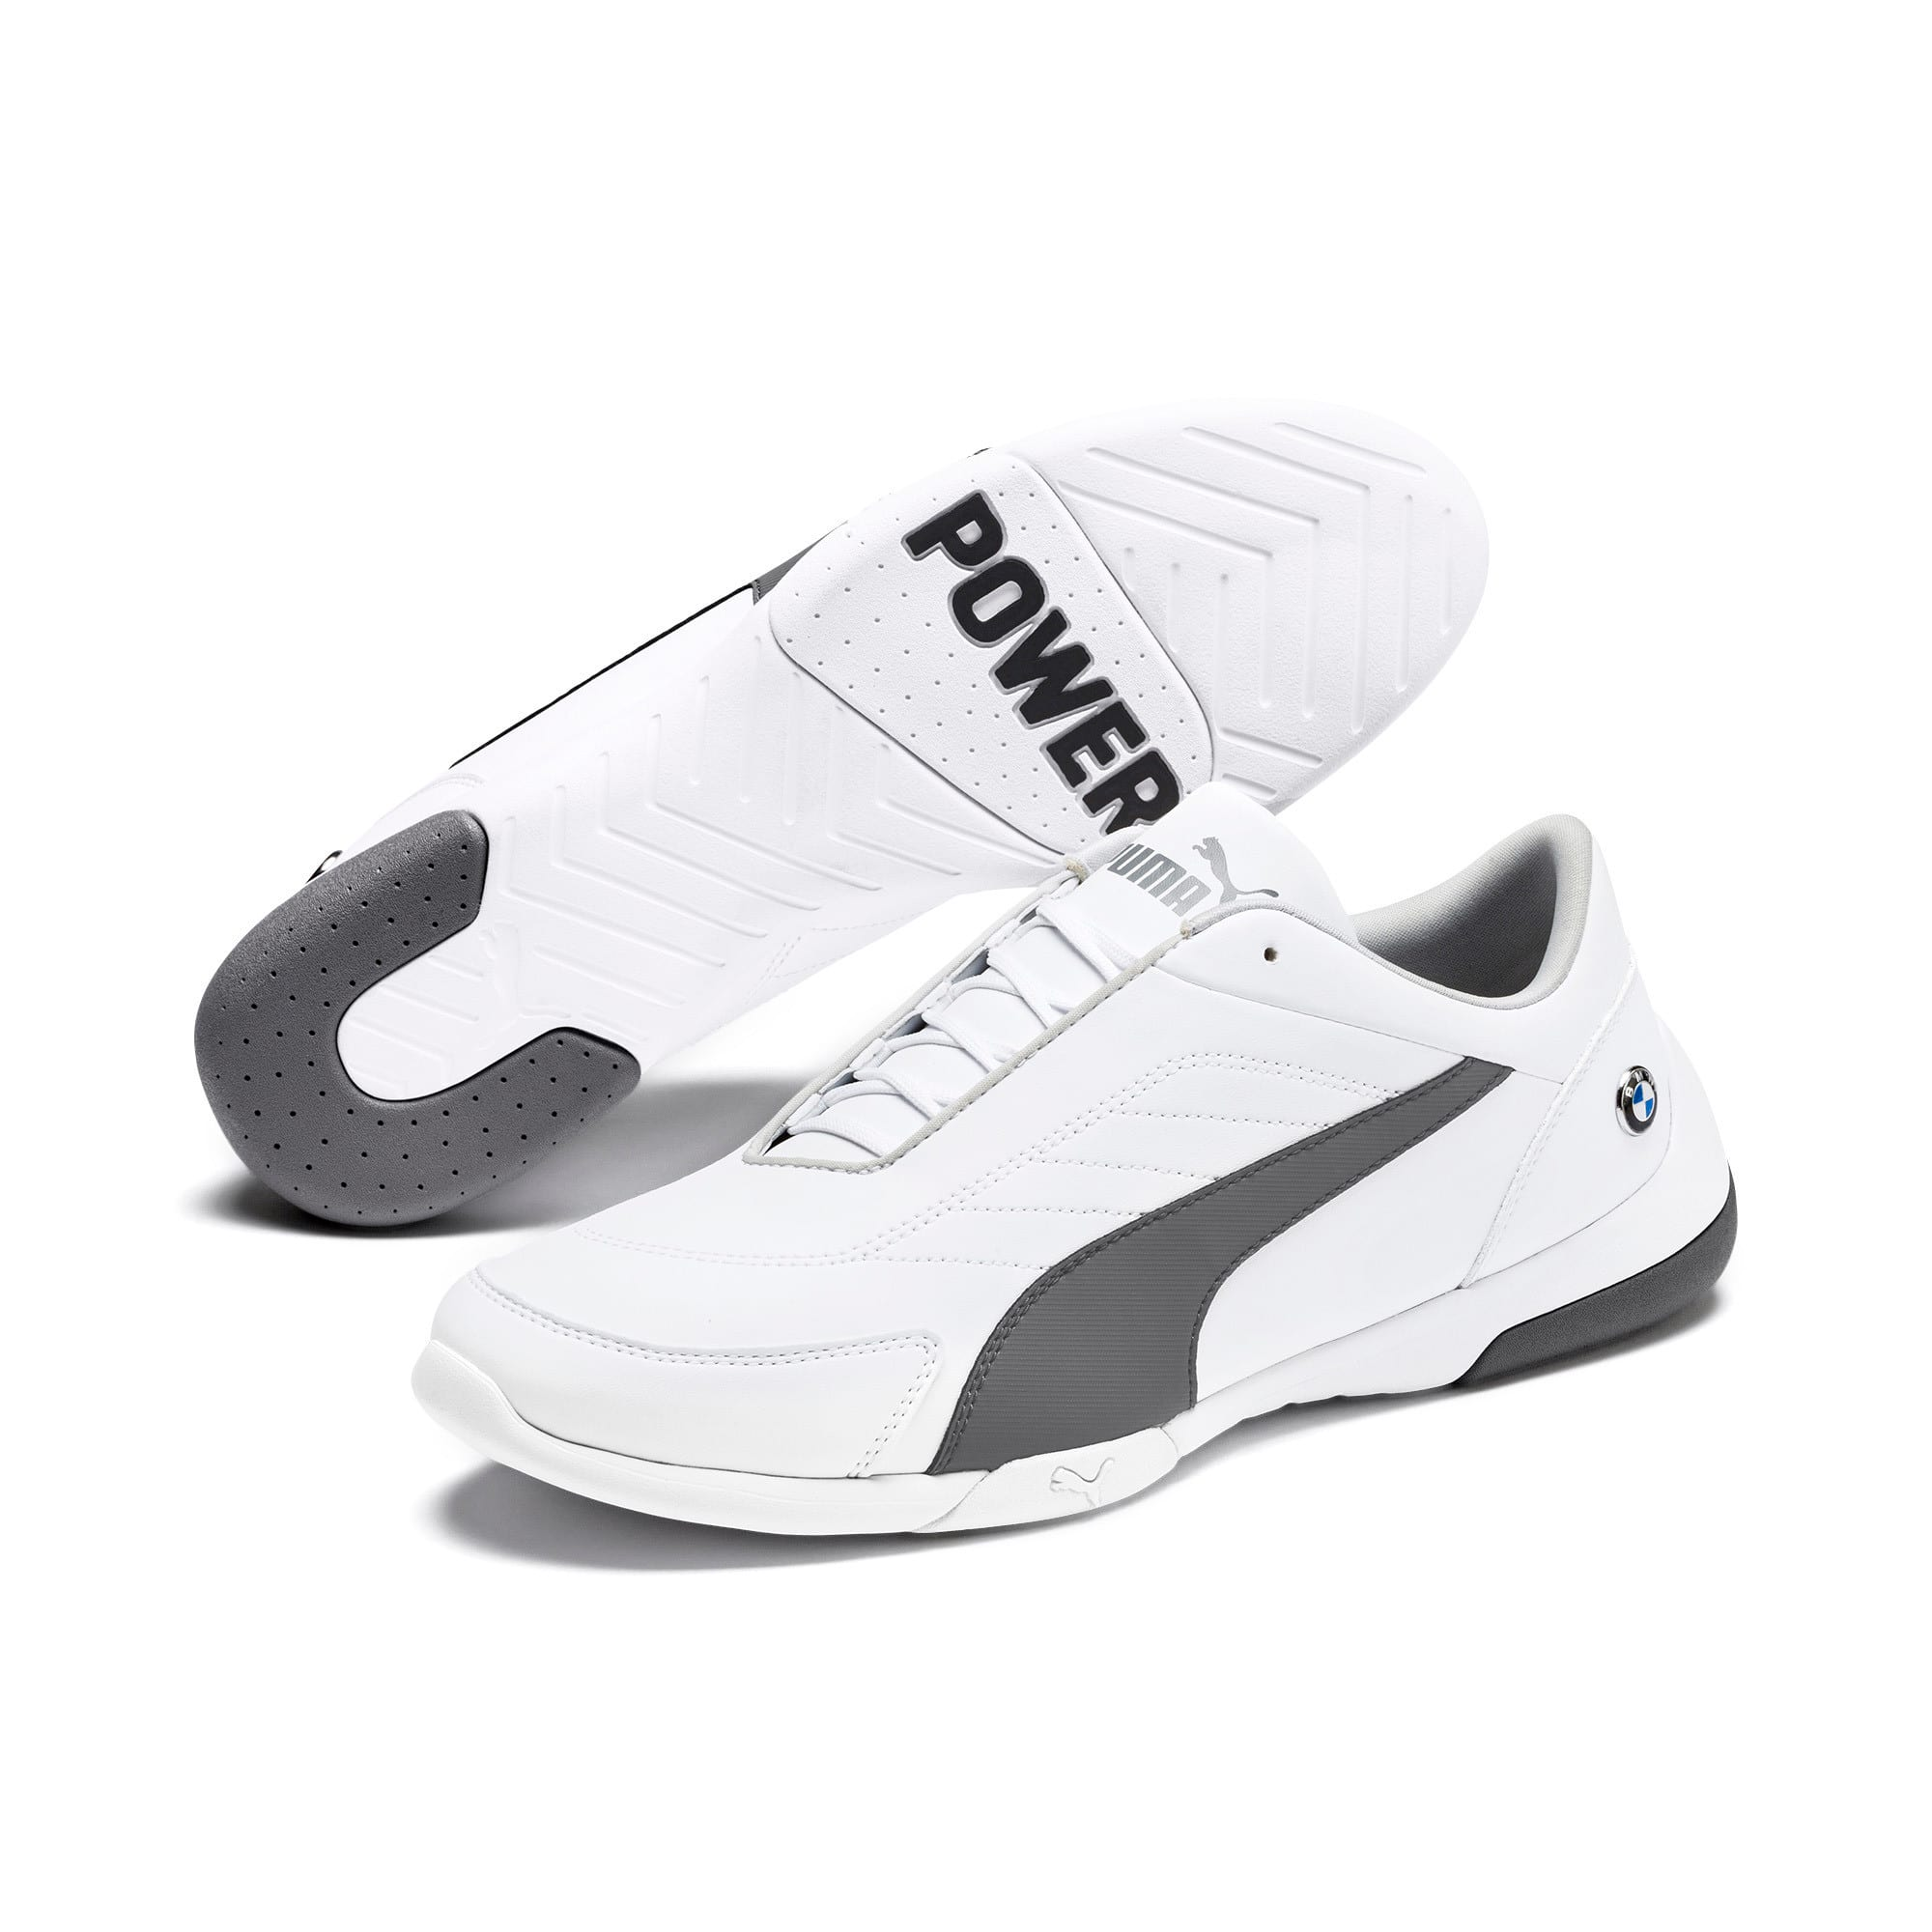 BMW M Motorsport Kart Cat III Shoes, Puma White-Smoked Pearl, large